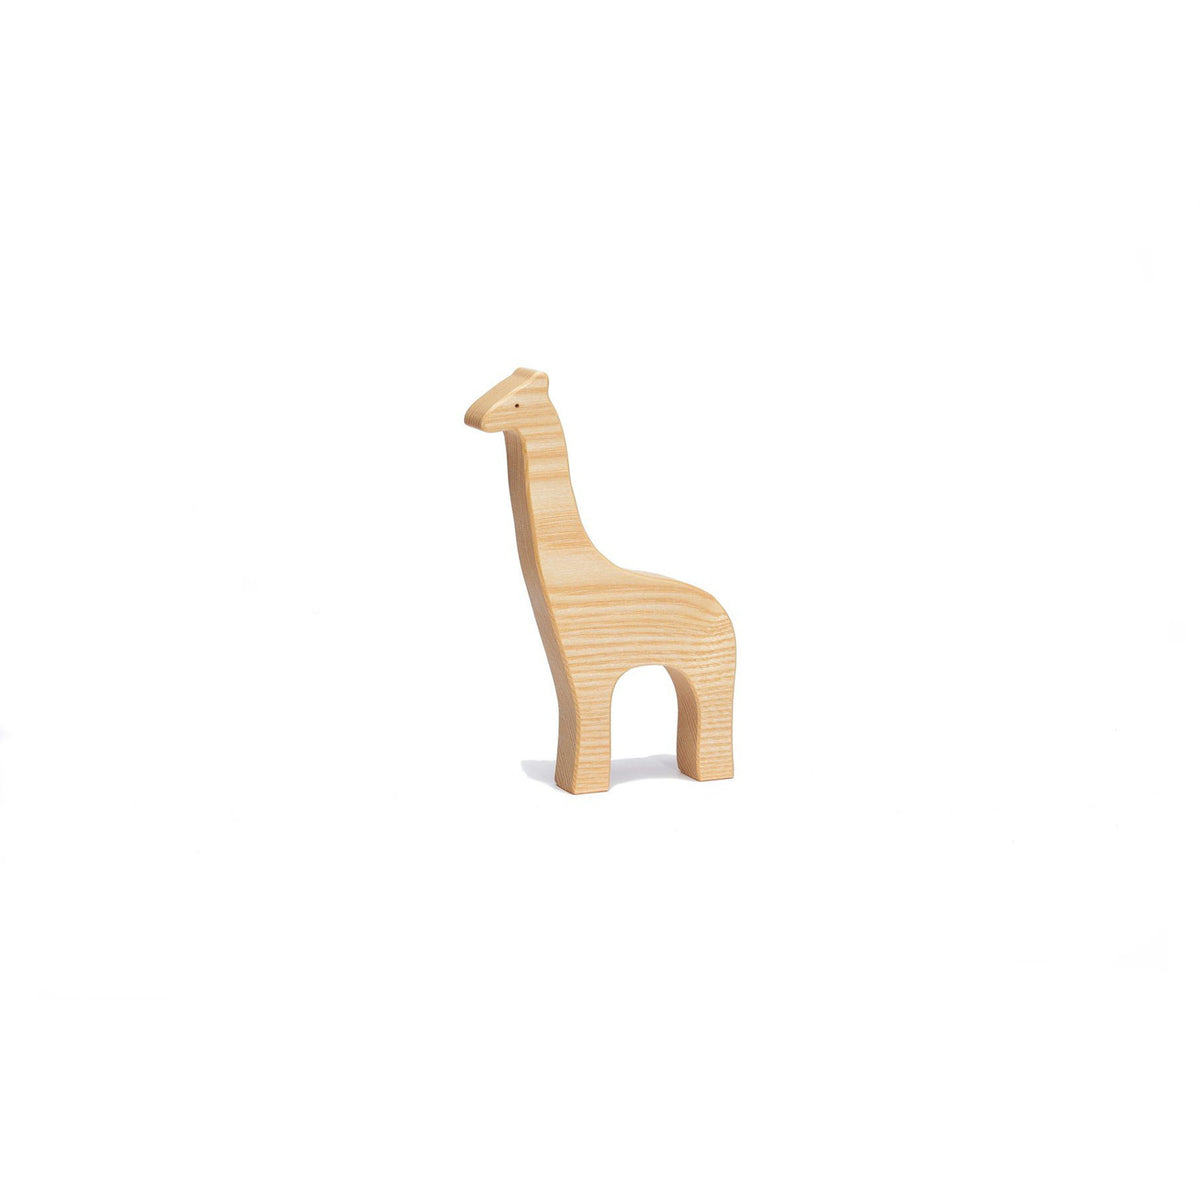 Ocamora Wooden Animal: Giraffe